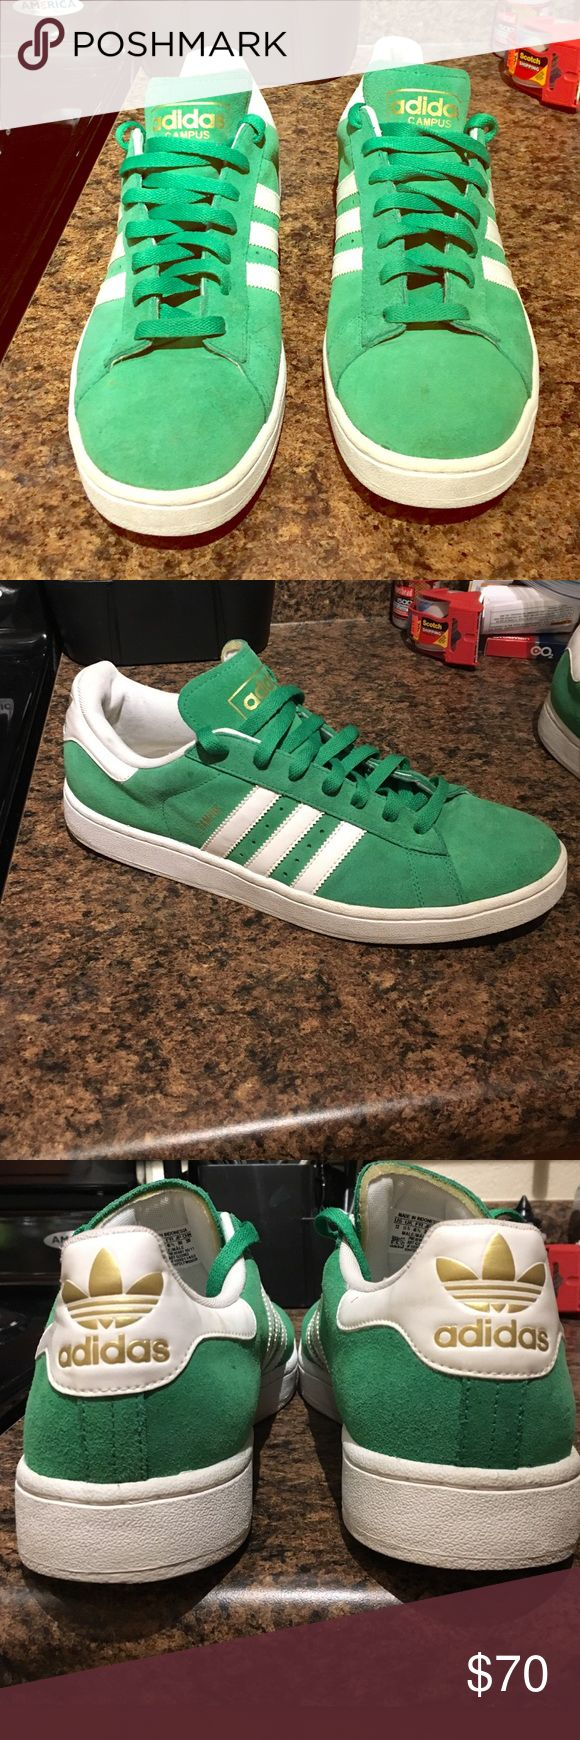 🔫☘️Green Adidas Campus's: Suede Men's Sz 12🔥🍀 Celtic Green Adidas Campus w/gold writing, Men's 12. They're wicked comfortable, worn maybe 4-5 times max. Haven't been worn in 6 months, and were just cleaned before posting. Didn't need much work but they're a 9/10, maybe 9.5.  I don't wear anything but Nike now so don't have much use for em but they're EXTREMELY RARE, price will reflect that but nothing crazy. Adidas Shoes Sneakers